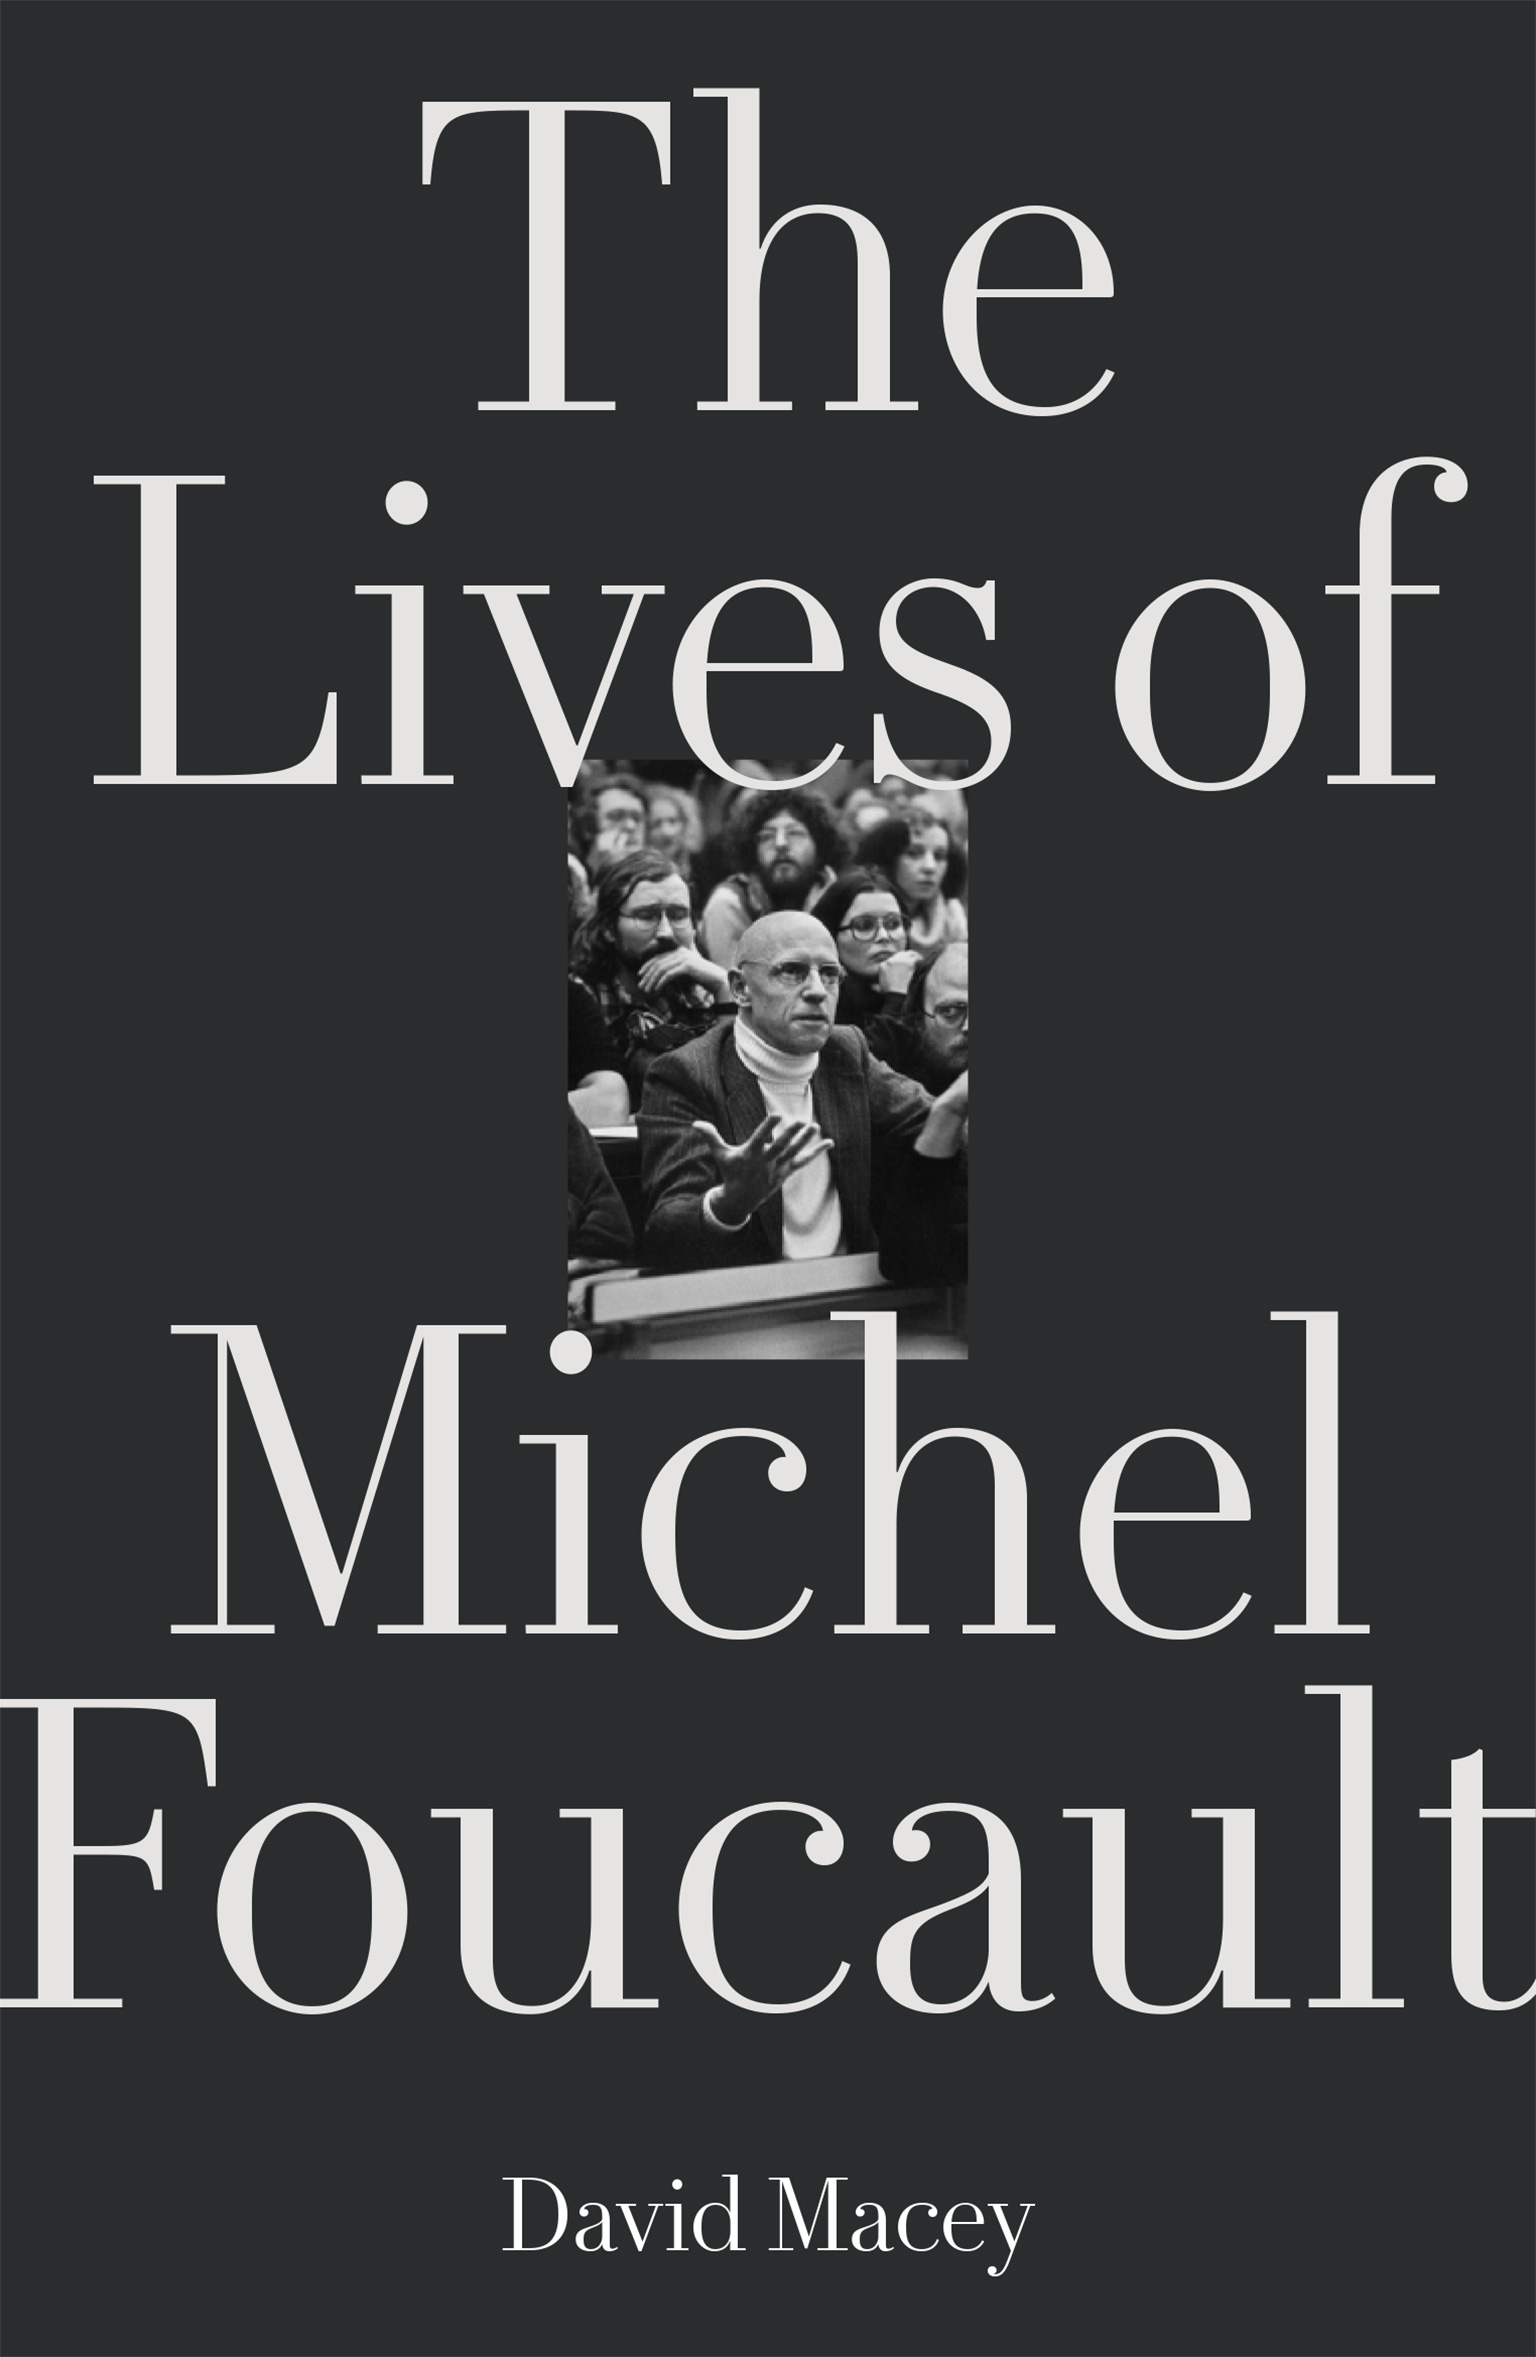 Macey---lives-of-foucault-(dragged)